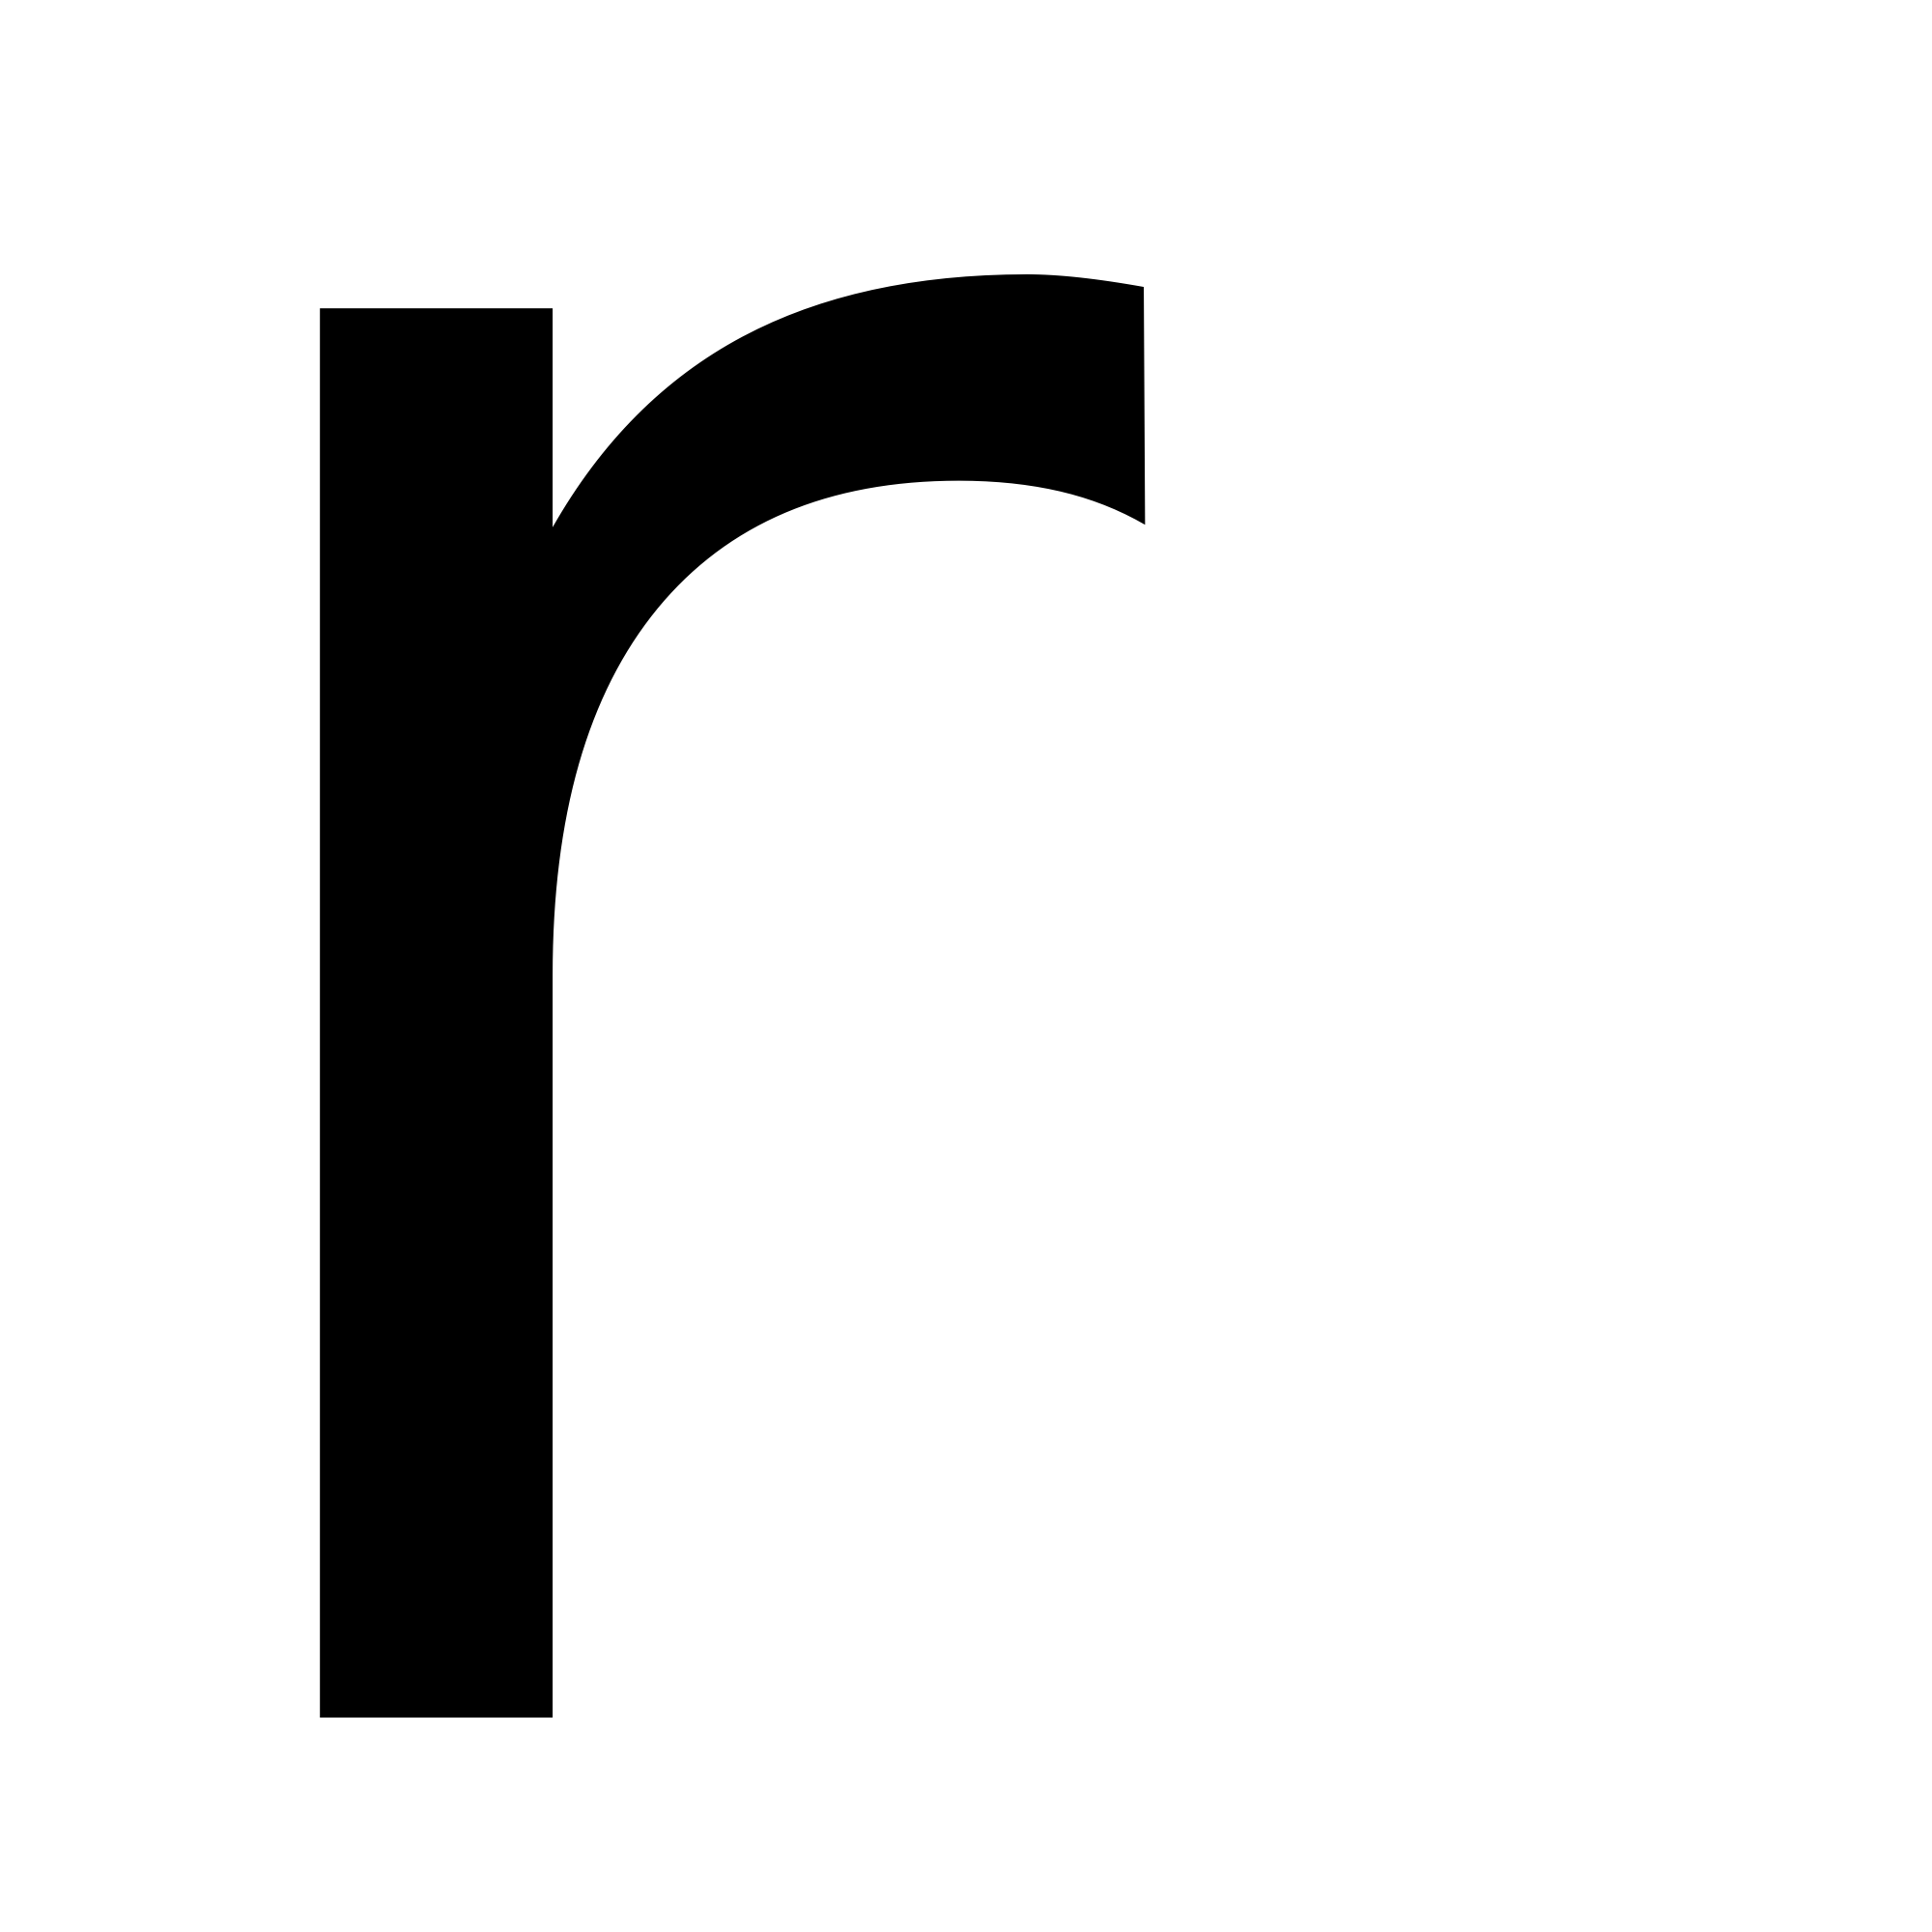 Black letter r png. File svg wikimedia commons